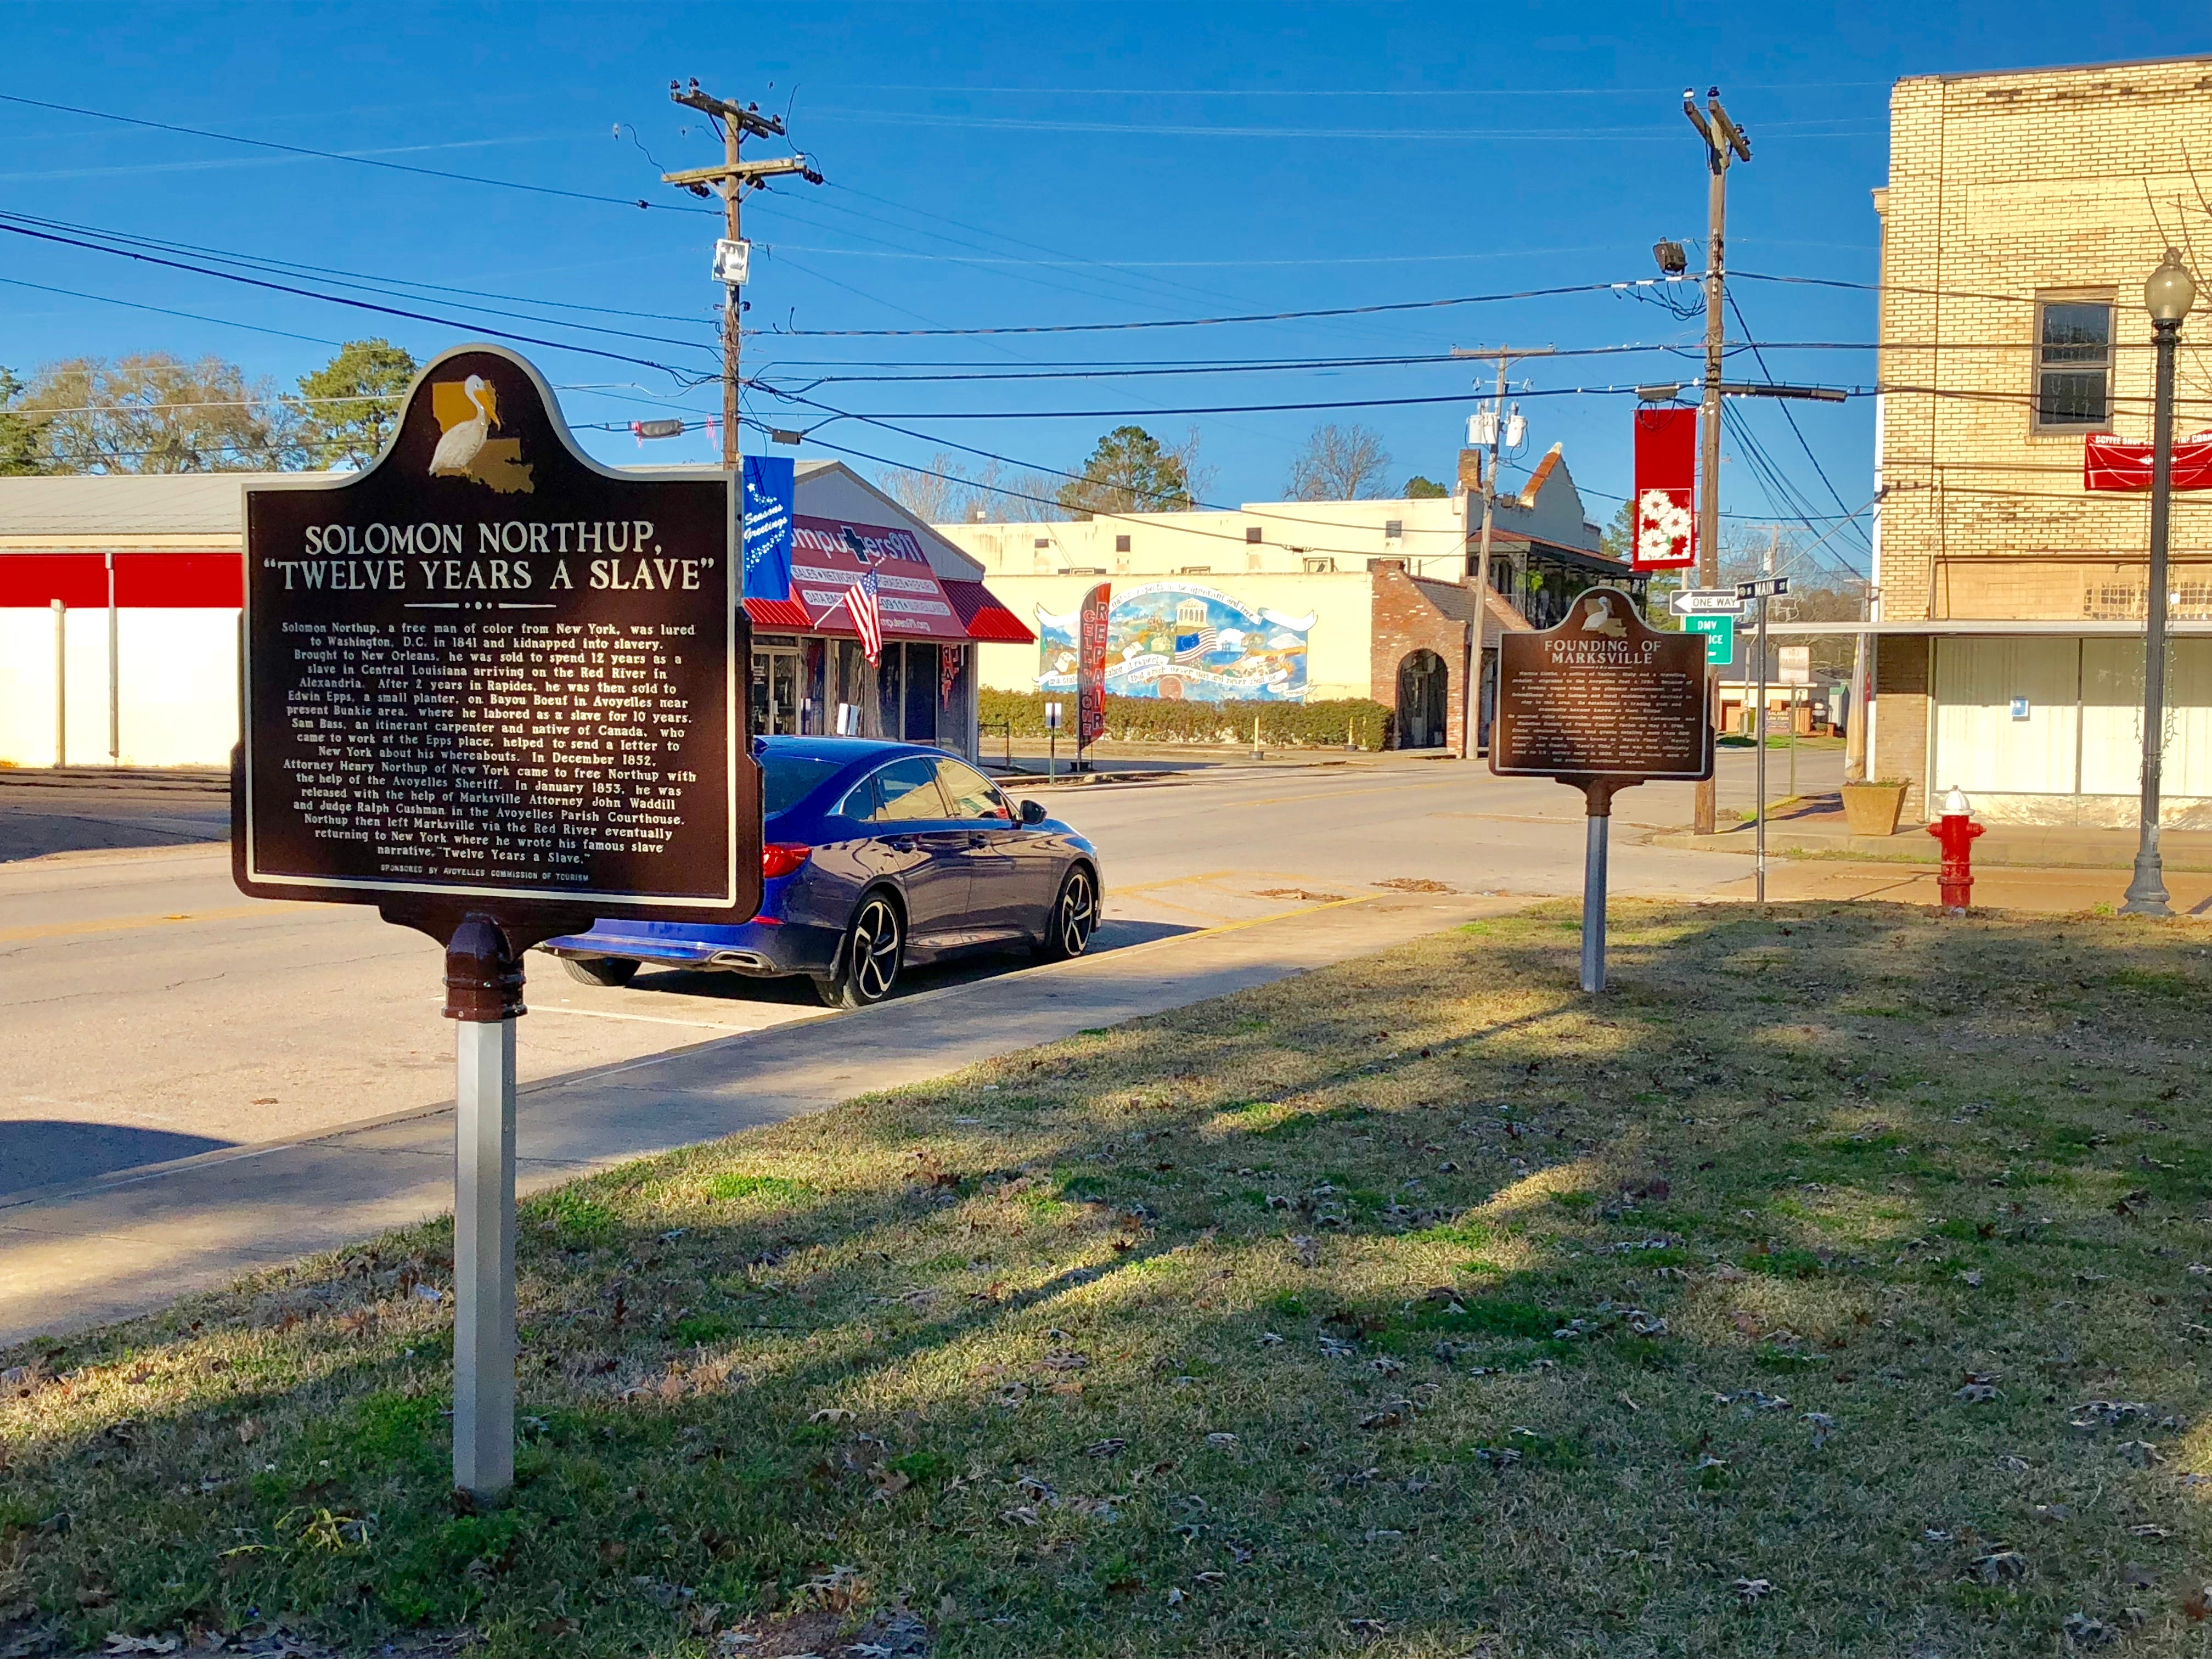 The Northup Trail ends at the historic courthouse in downtown Marksville. In the 1840s Solomun Northup was kidnapped as a free man black in New York and sold into slavery in Central Louisiana, where he lived for 12 years until he regained his freedom at this courthouse.